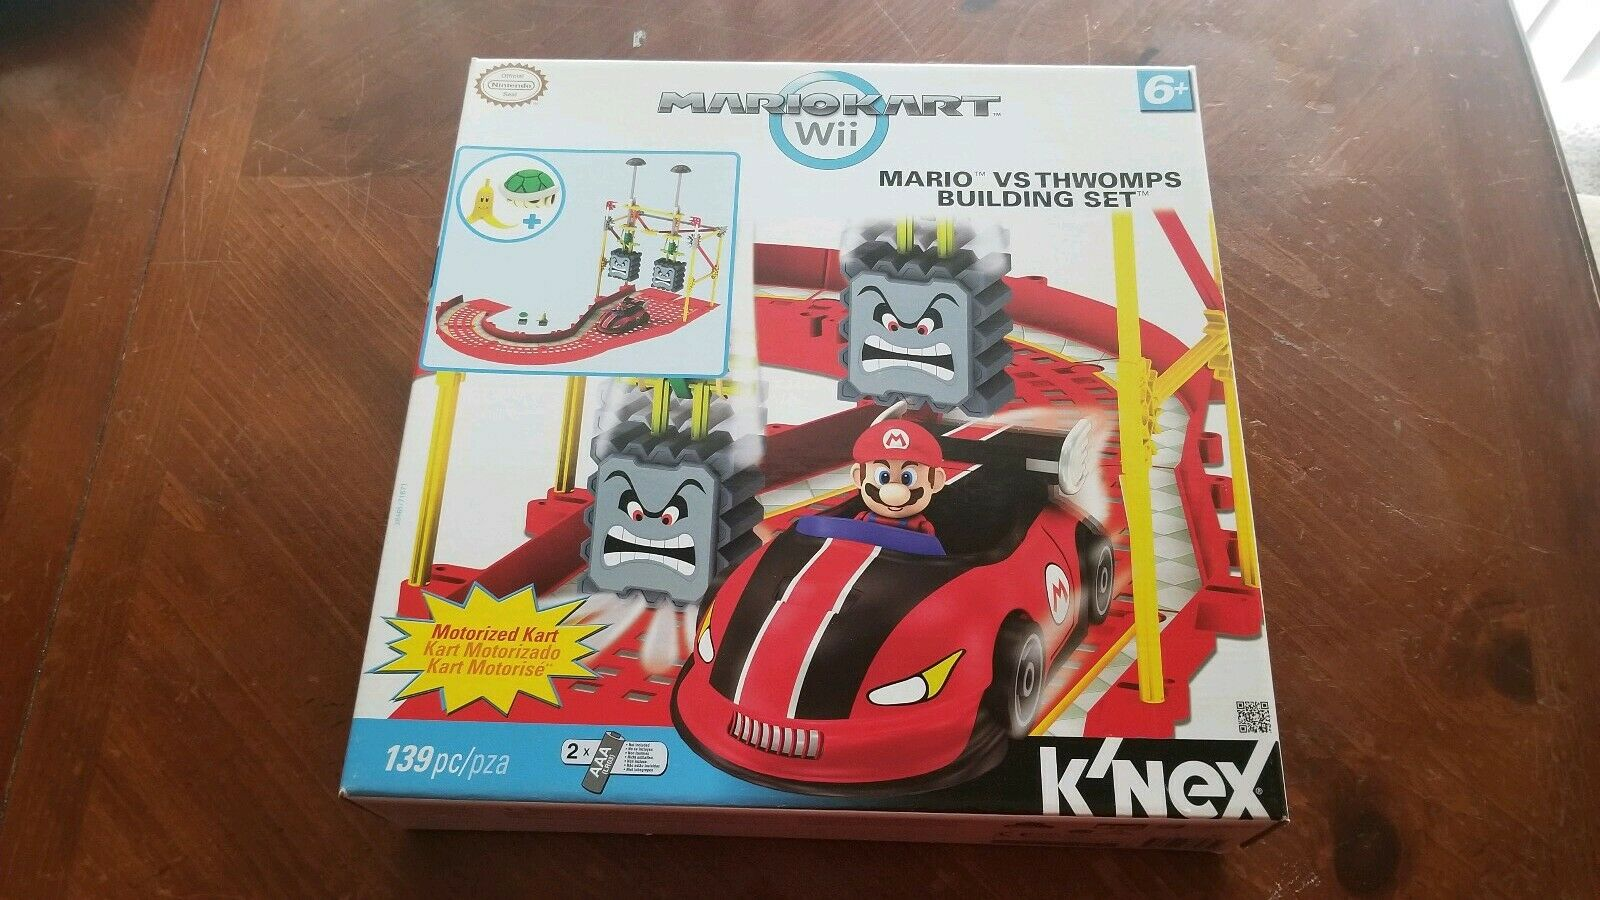 KNEX Mario Kart Wii Mario vs Thwomps Building Set (38465) New Free Shipping